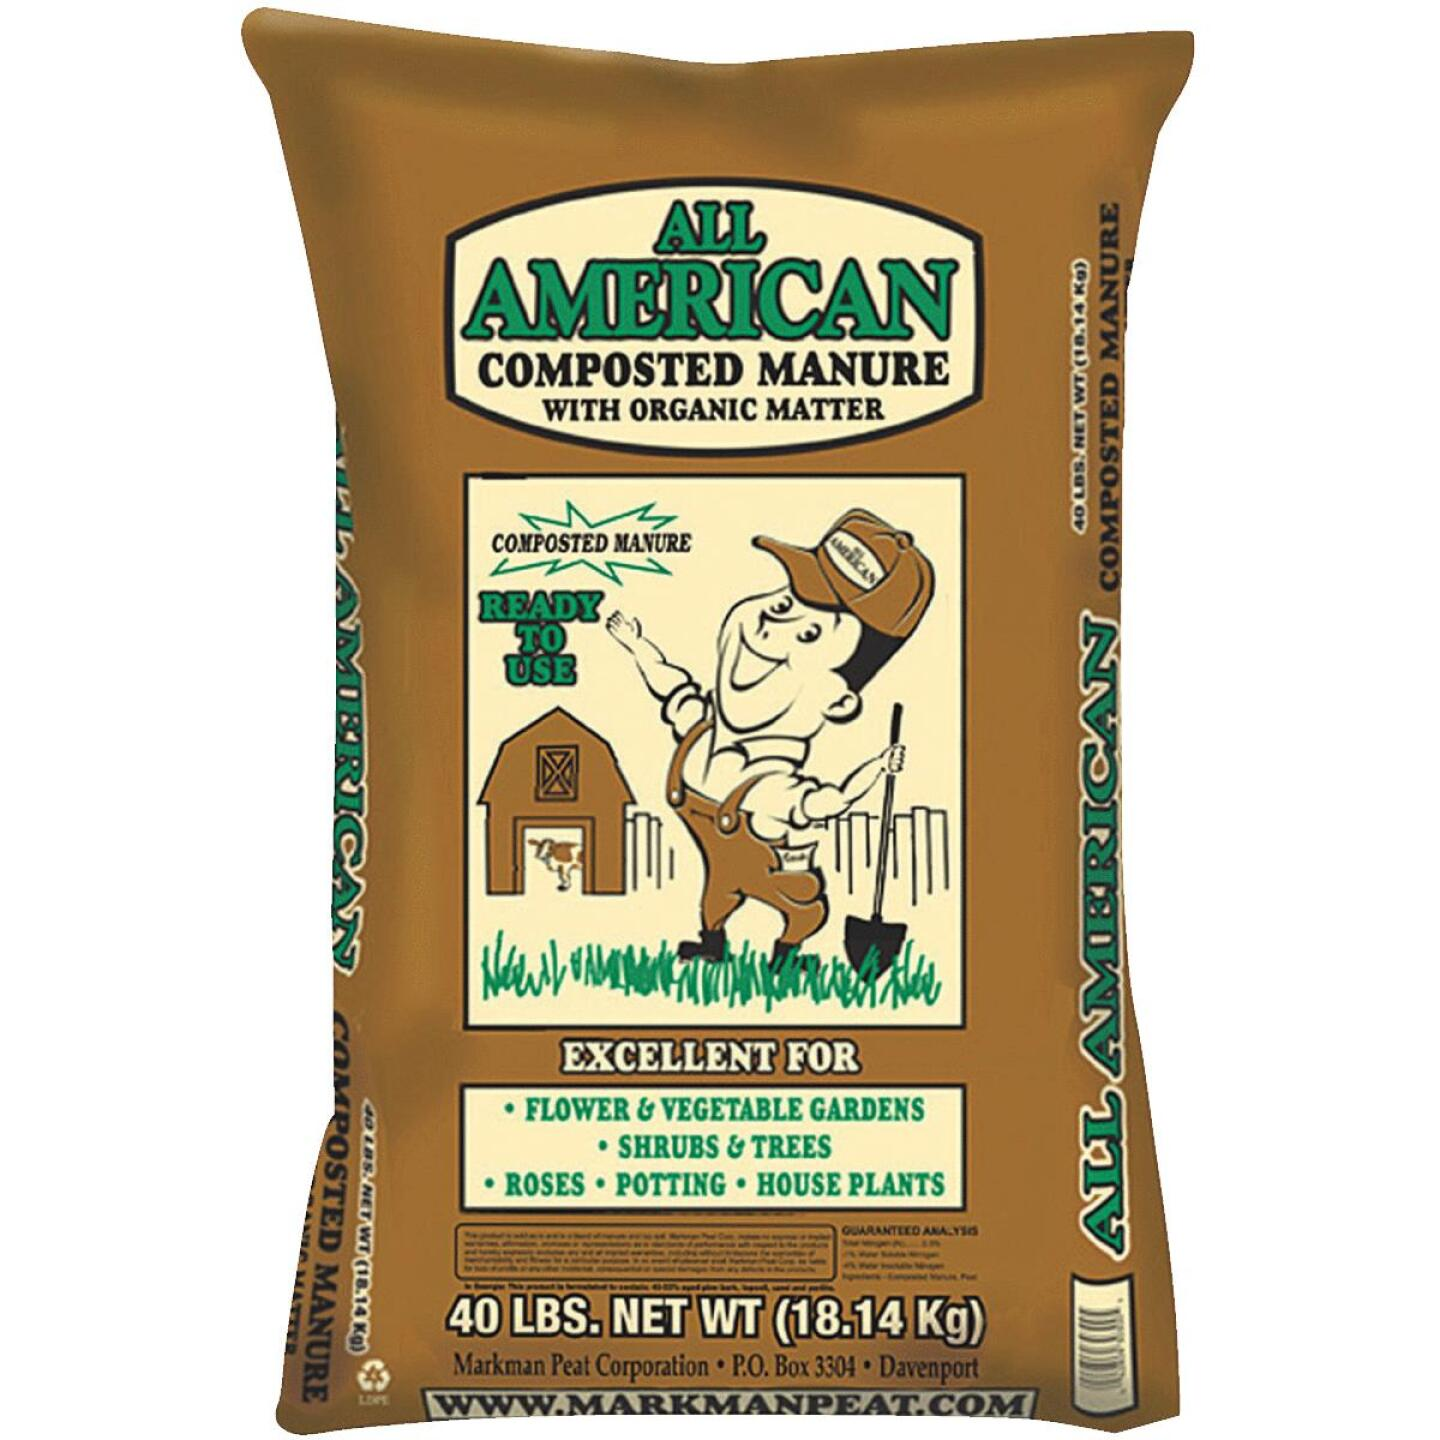 All American 40 Lb. Cow Manure Image 1